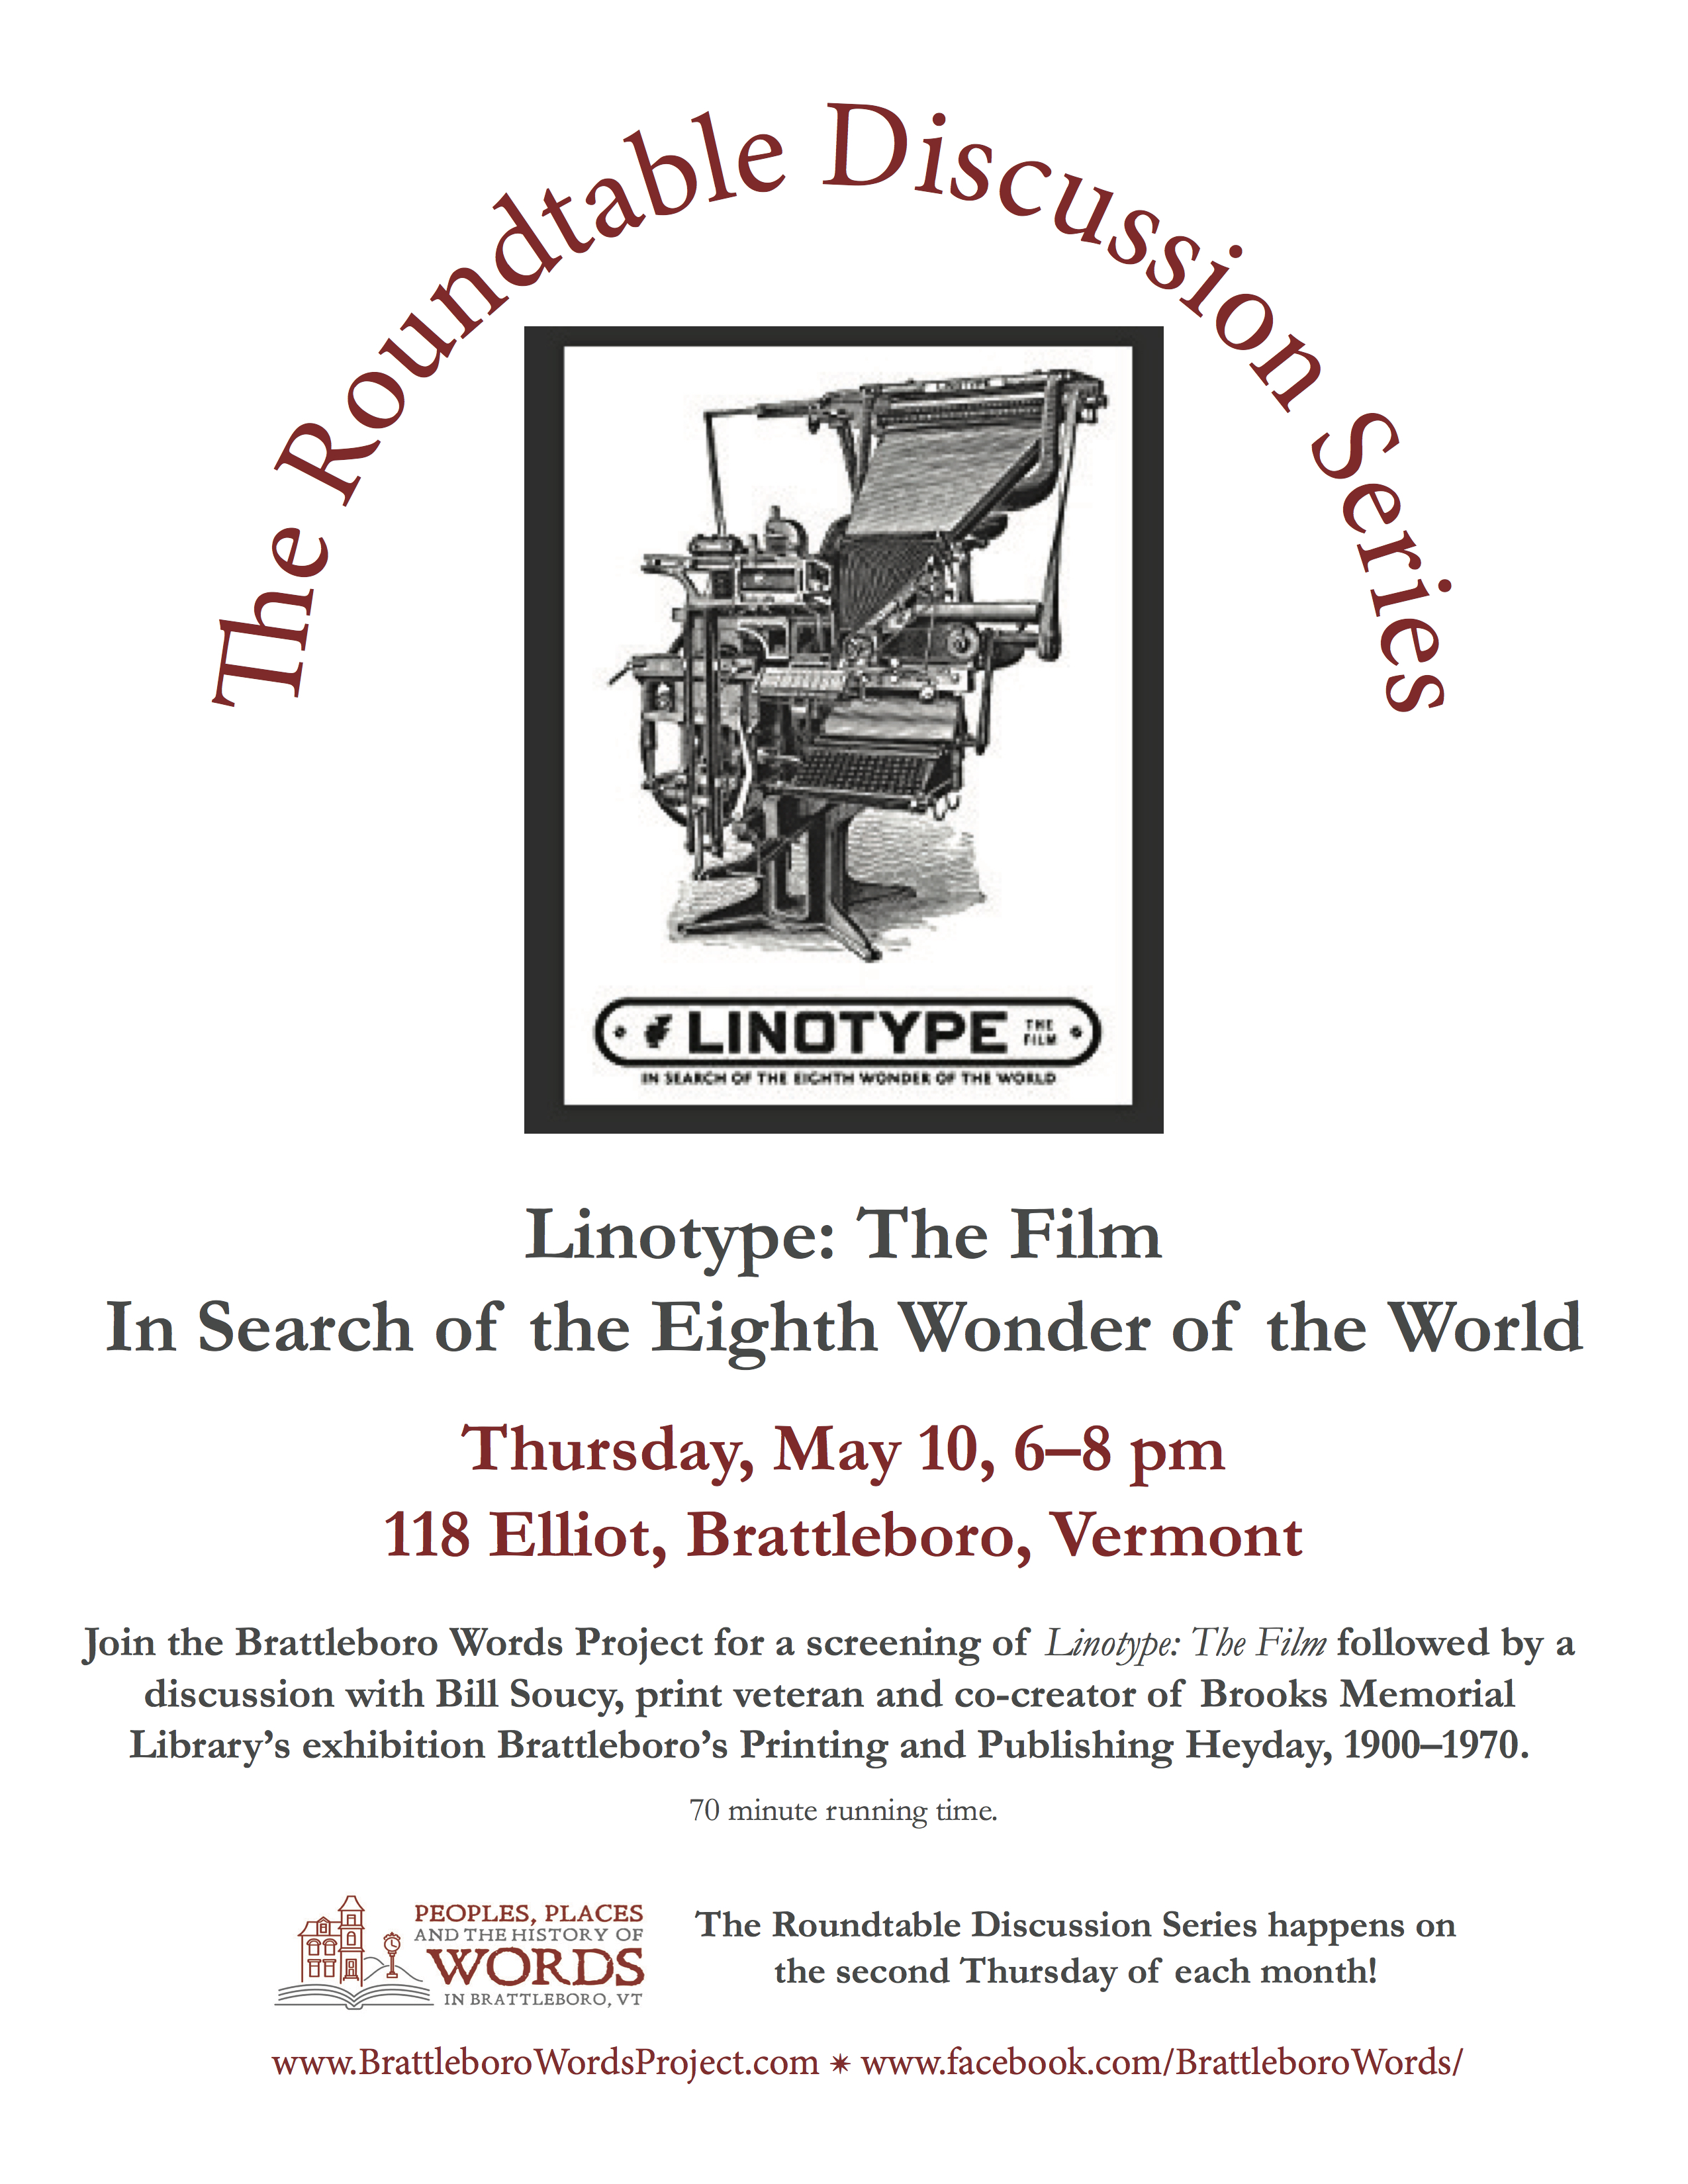 Roundtable Discussions | The Brattleboro Words Project